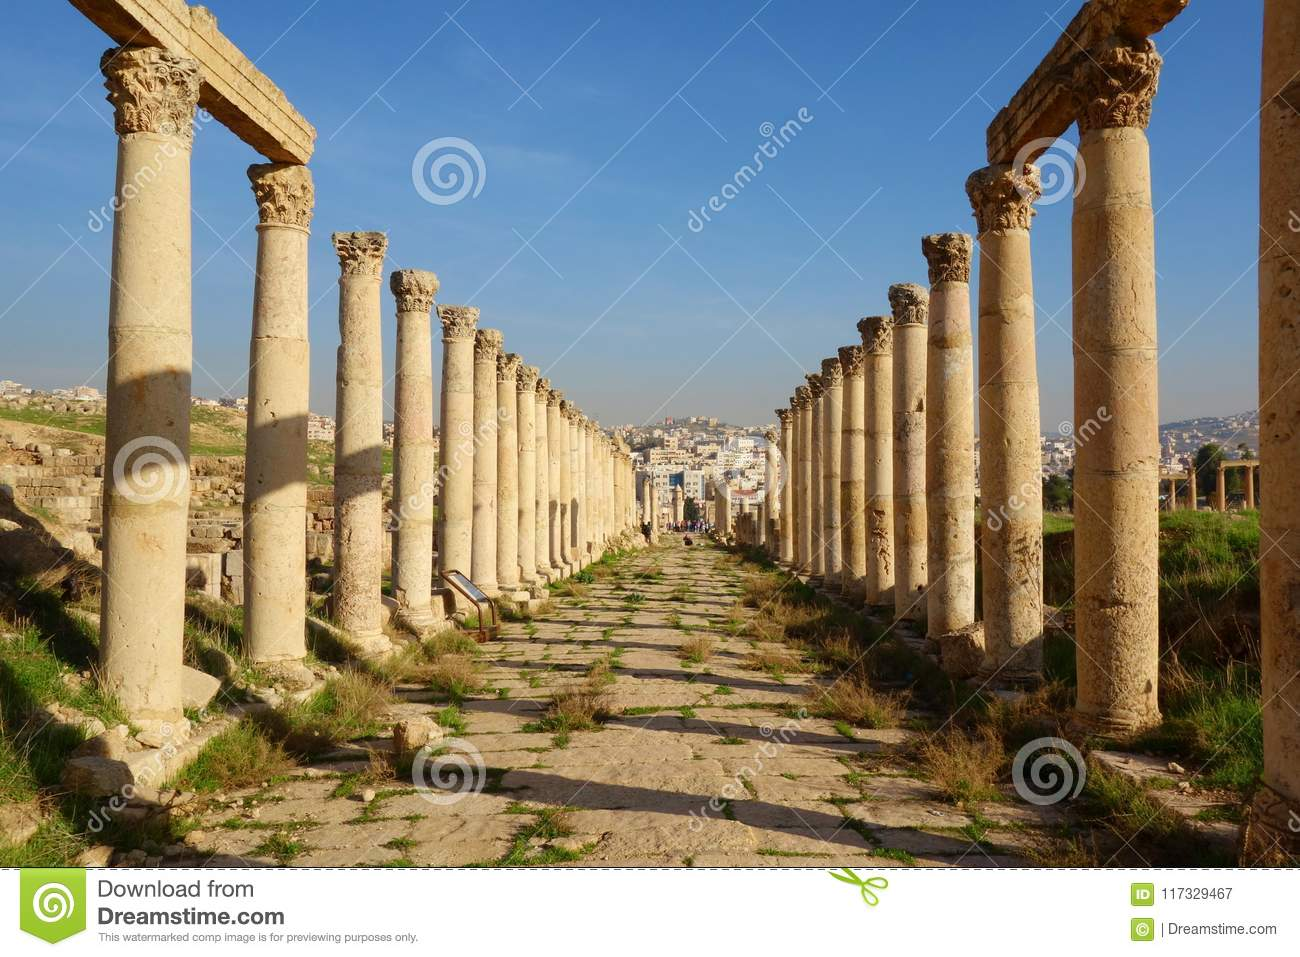 Architecture of Antiquity: a selection of sites